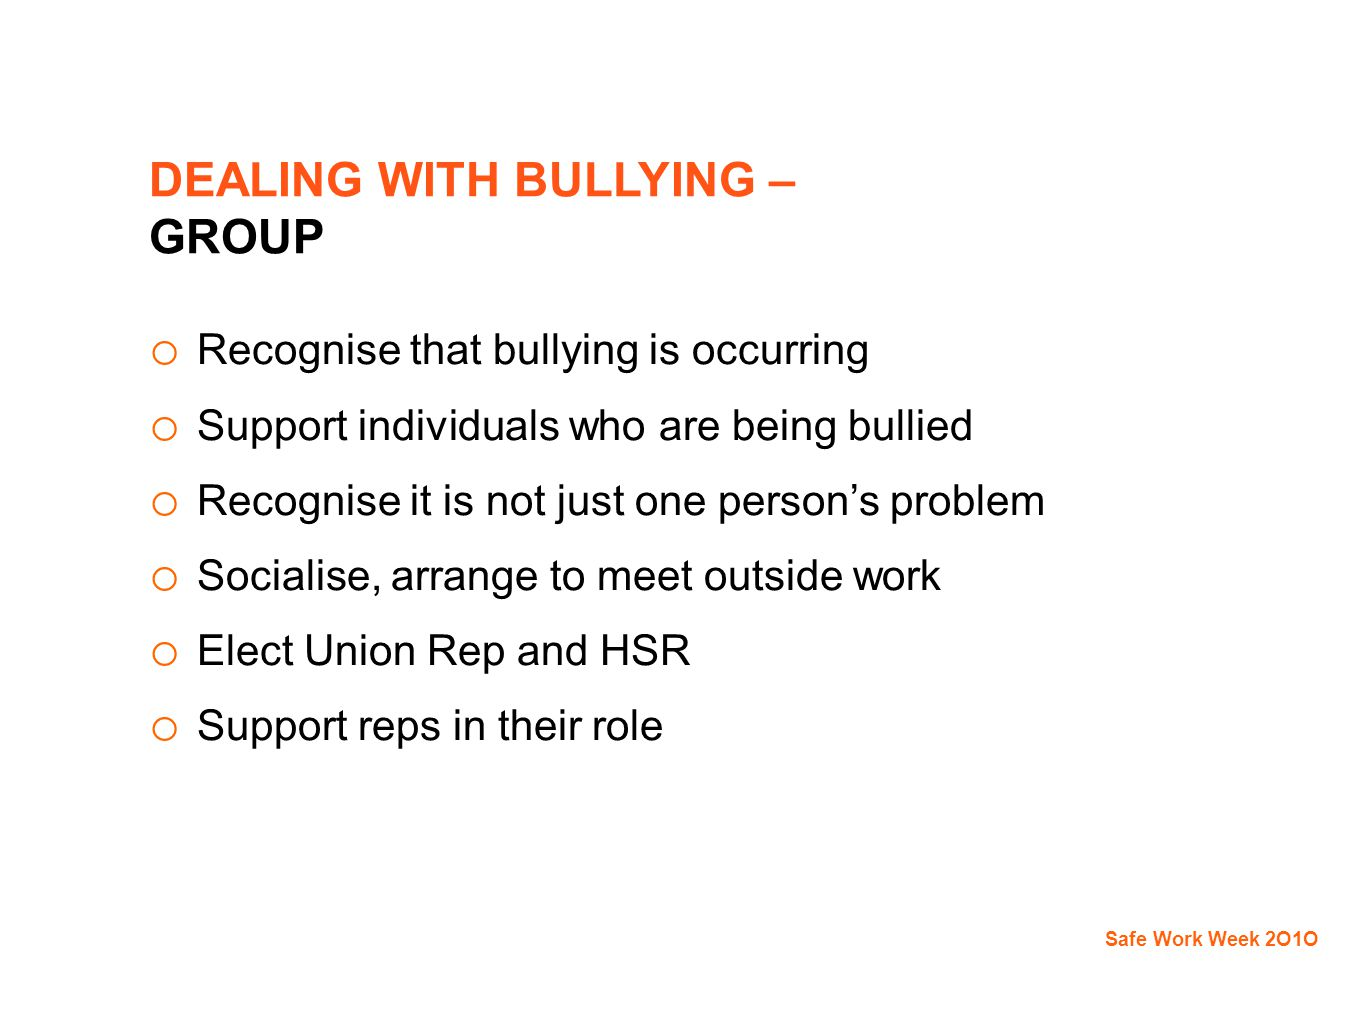 DEALING WITH BULLYING – GROUP o Recognise that bullying is occurring o Support individuals who are being bullied o Recognise it is not just one person's problem o Socialise, arrange to meet outside work o Elect Union Rep and HSR o Support reps in their role Safe Work Week 2O1O